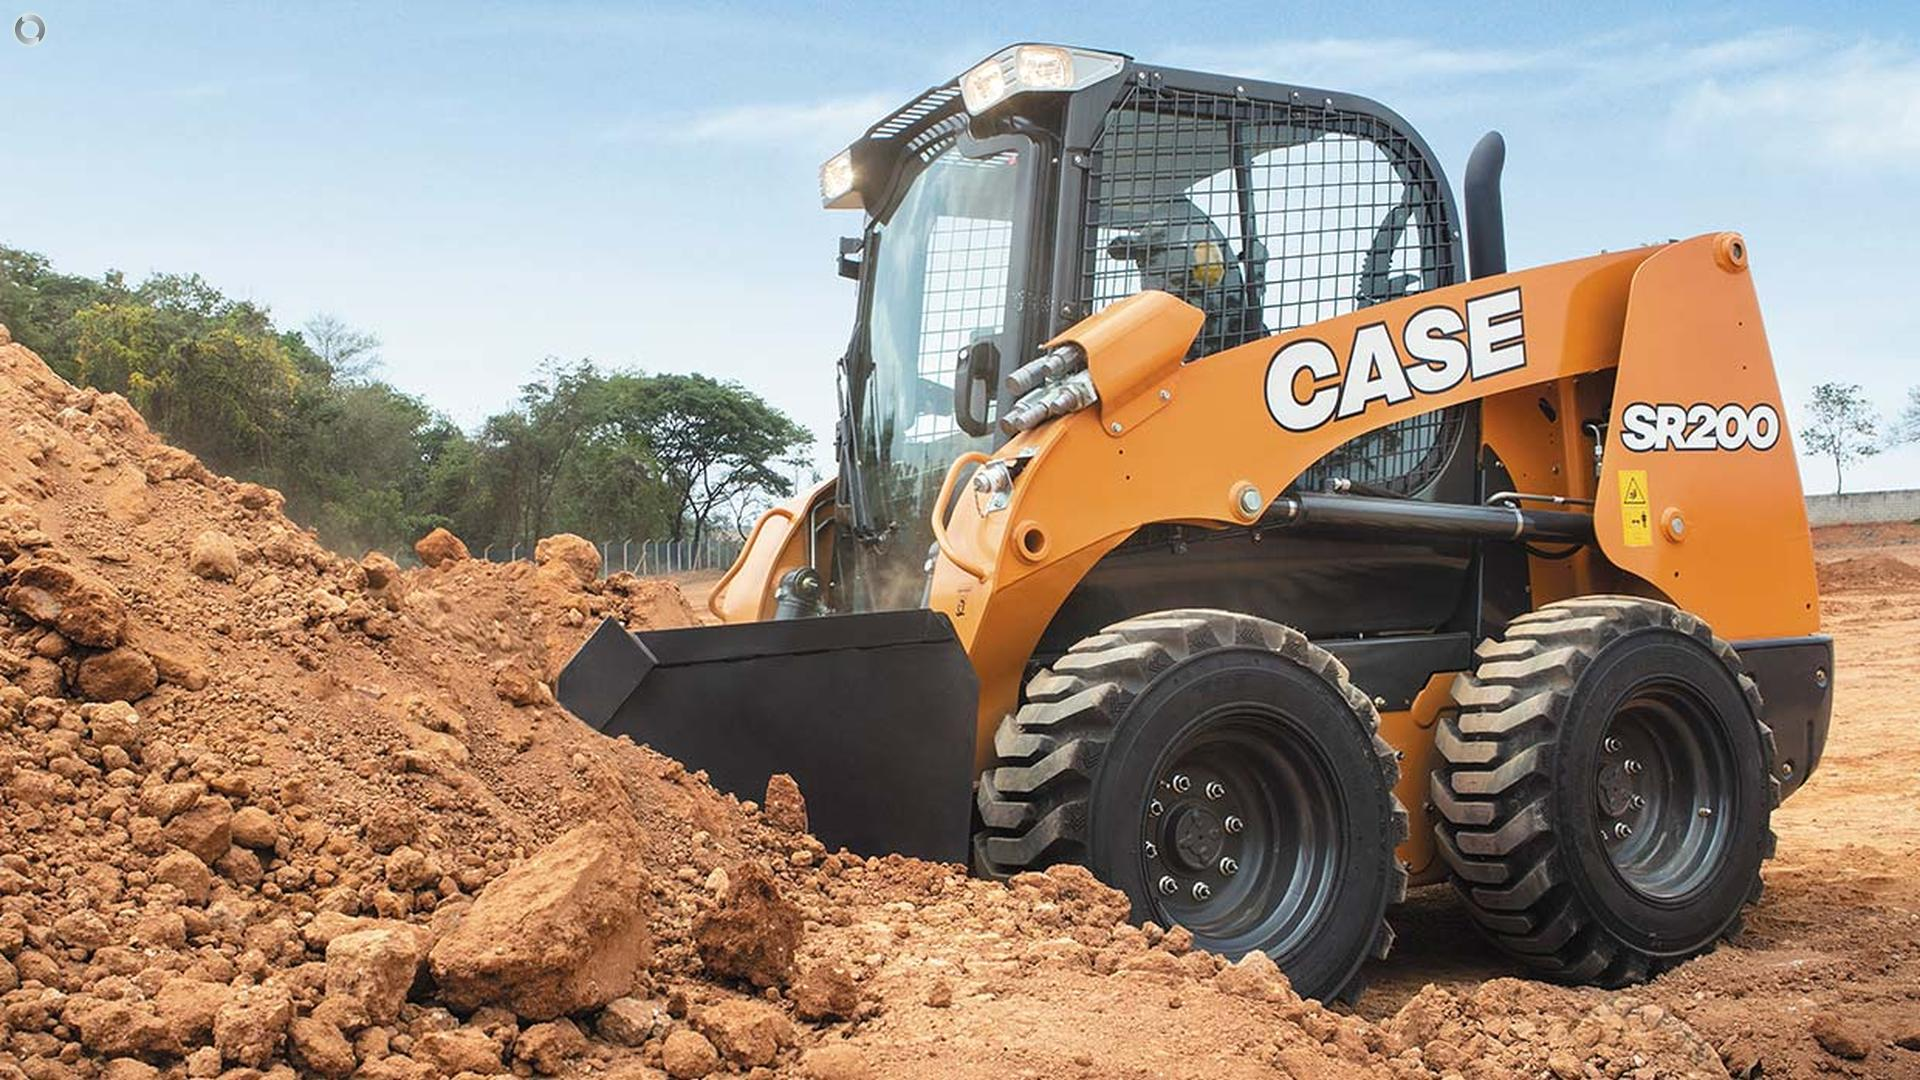 0 CASE SR200 Skid Steer